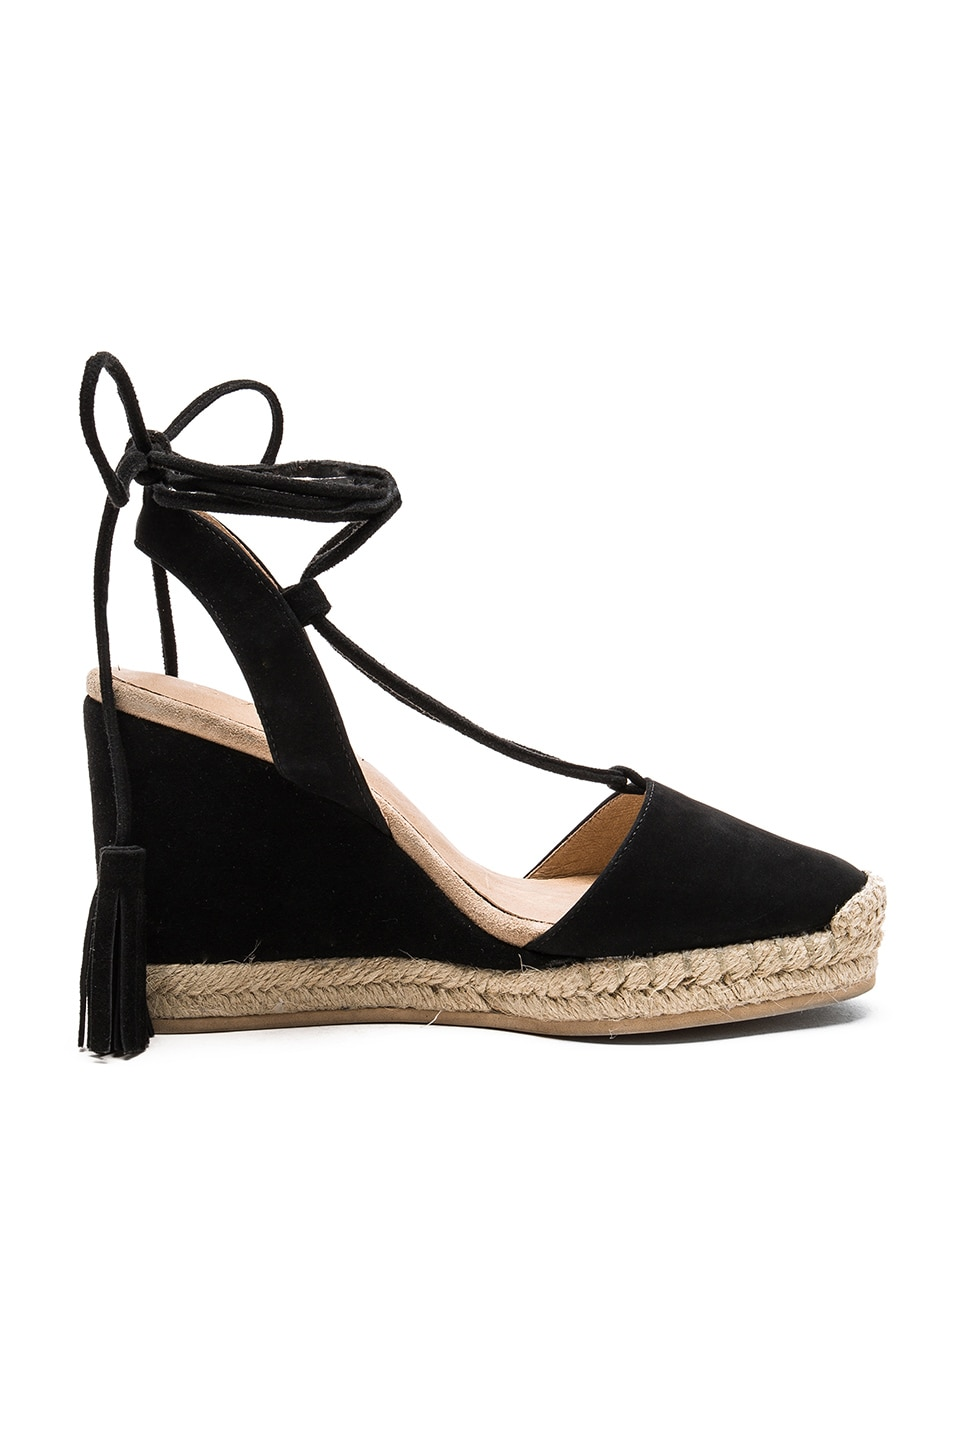 RAYE Daisy Wedge in Black